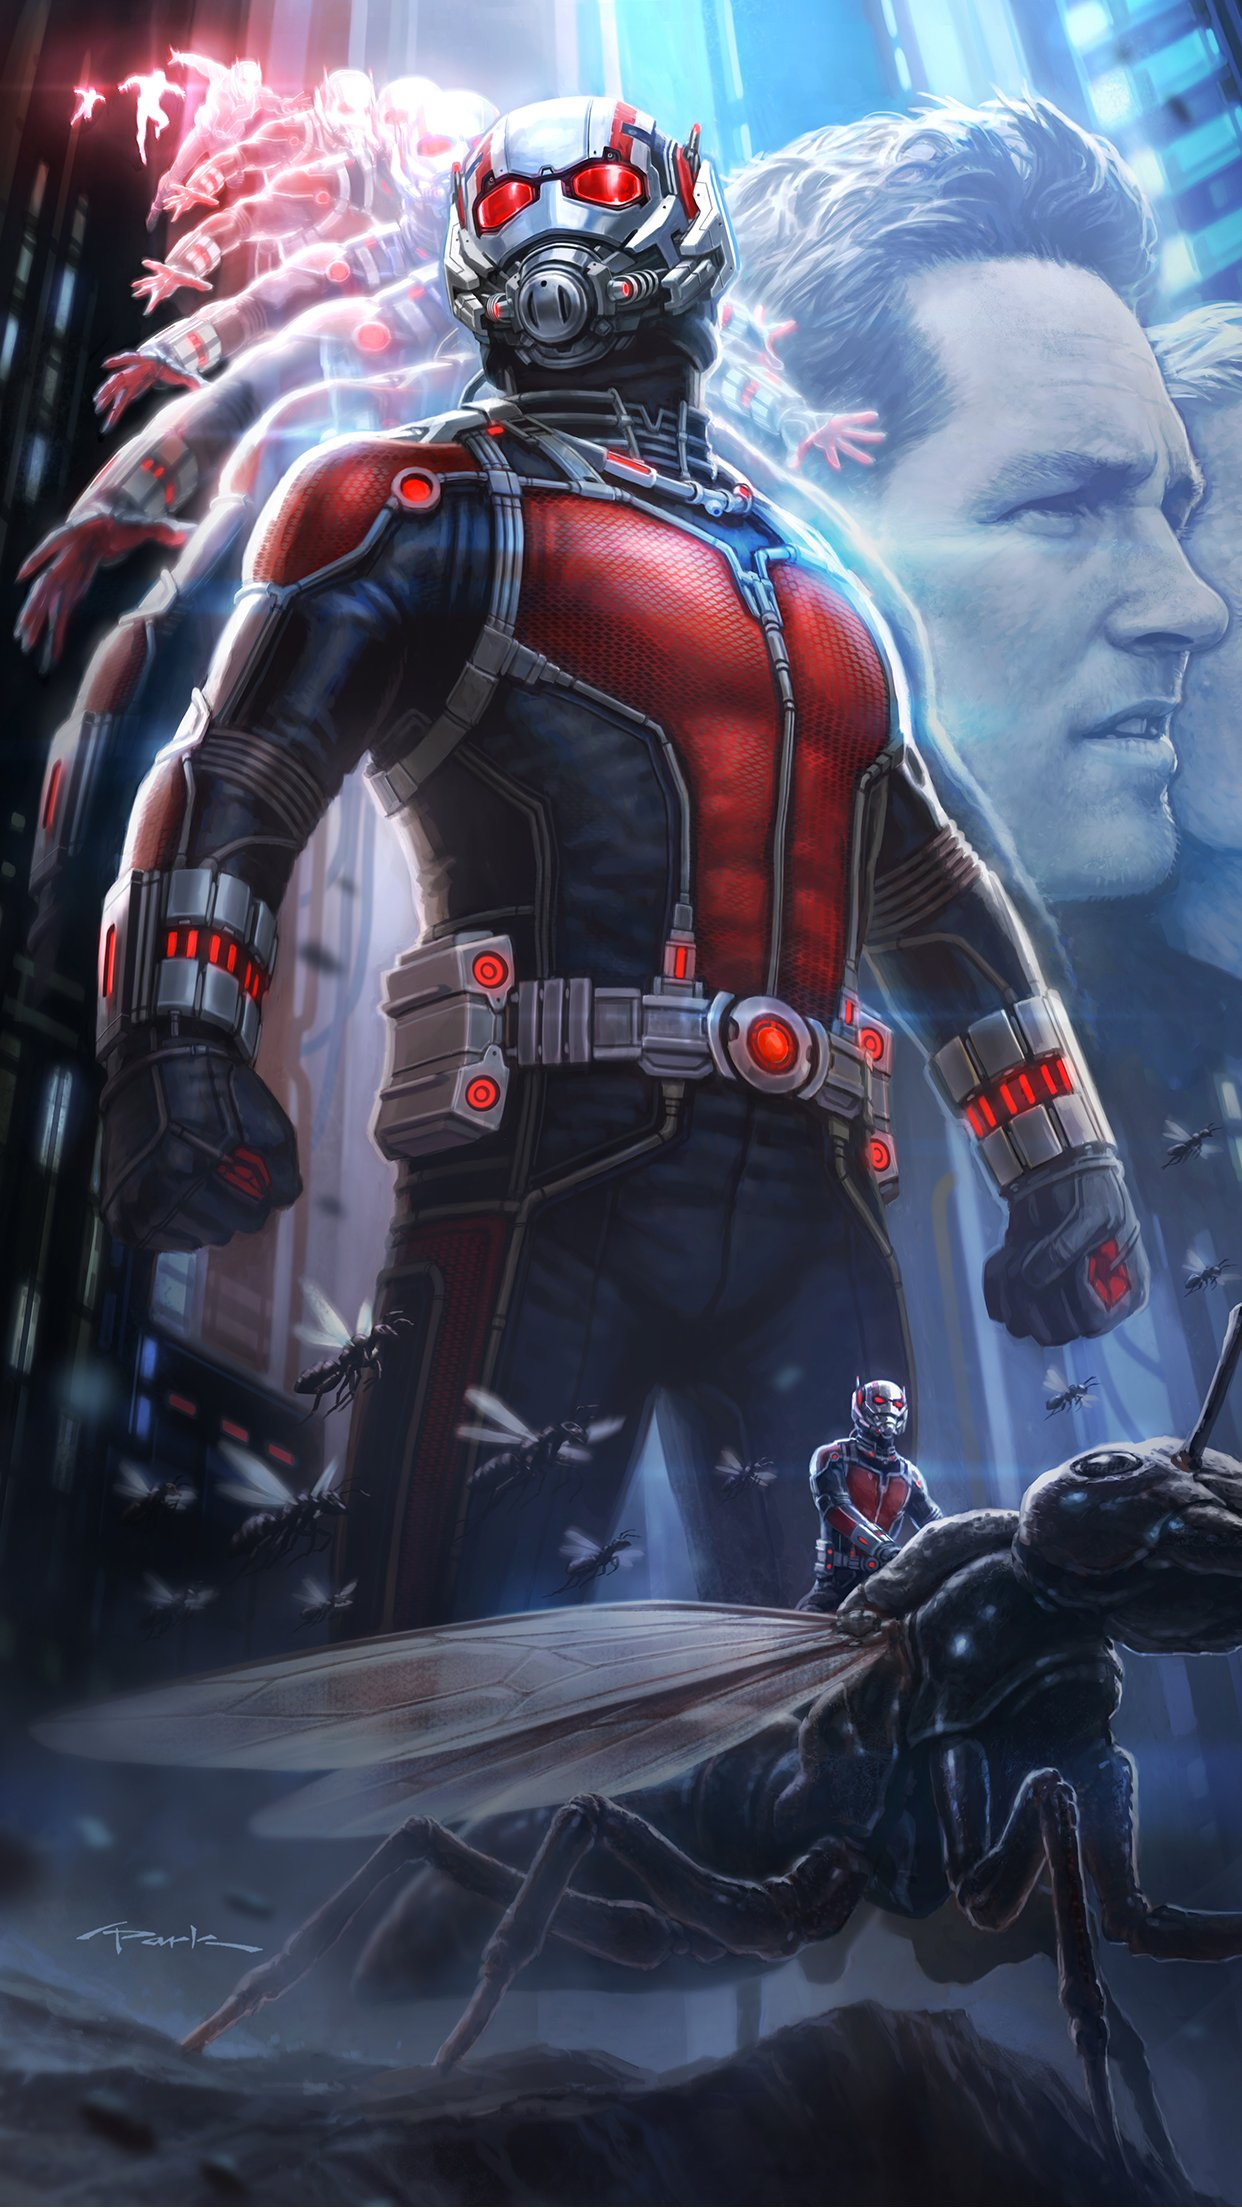 Ant Man Poster iPhone 3Wallpapers Parallax Les 3 Wallpapers iPhone du 1242x2208